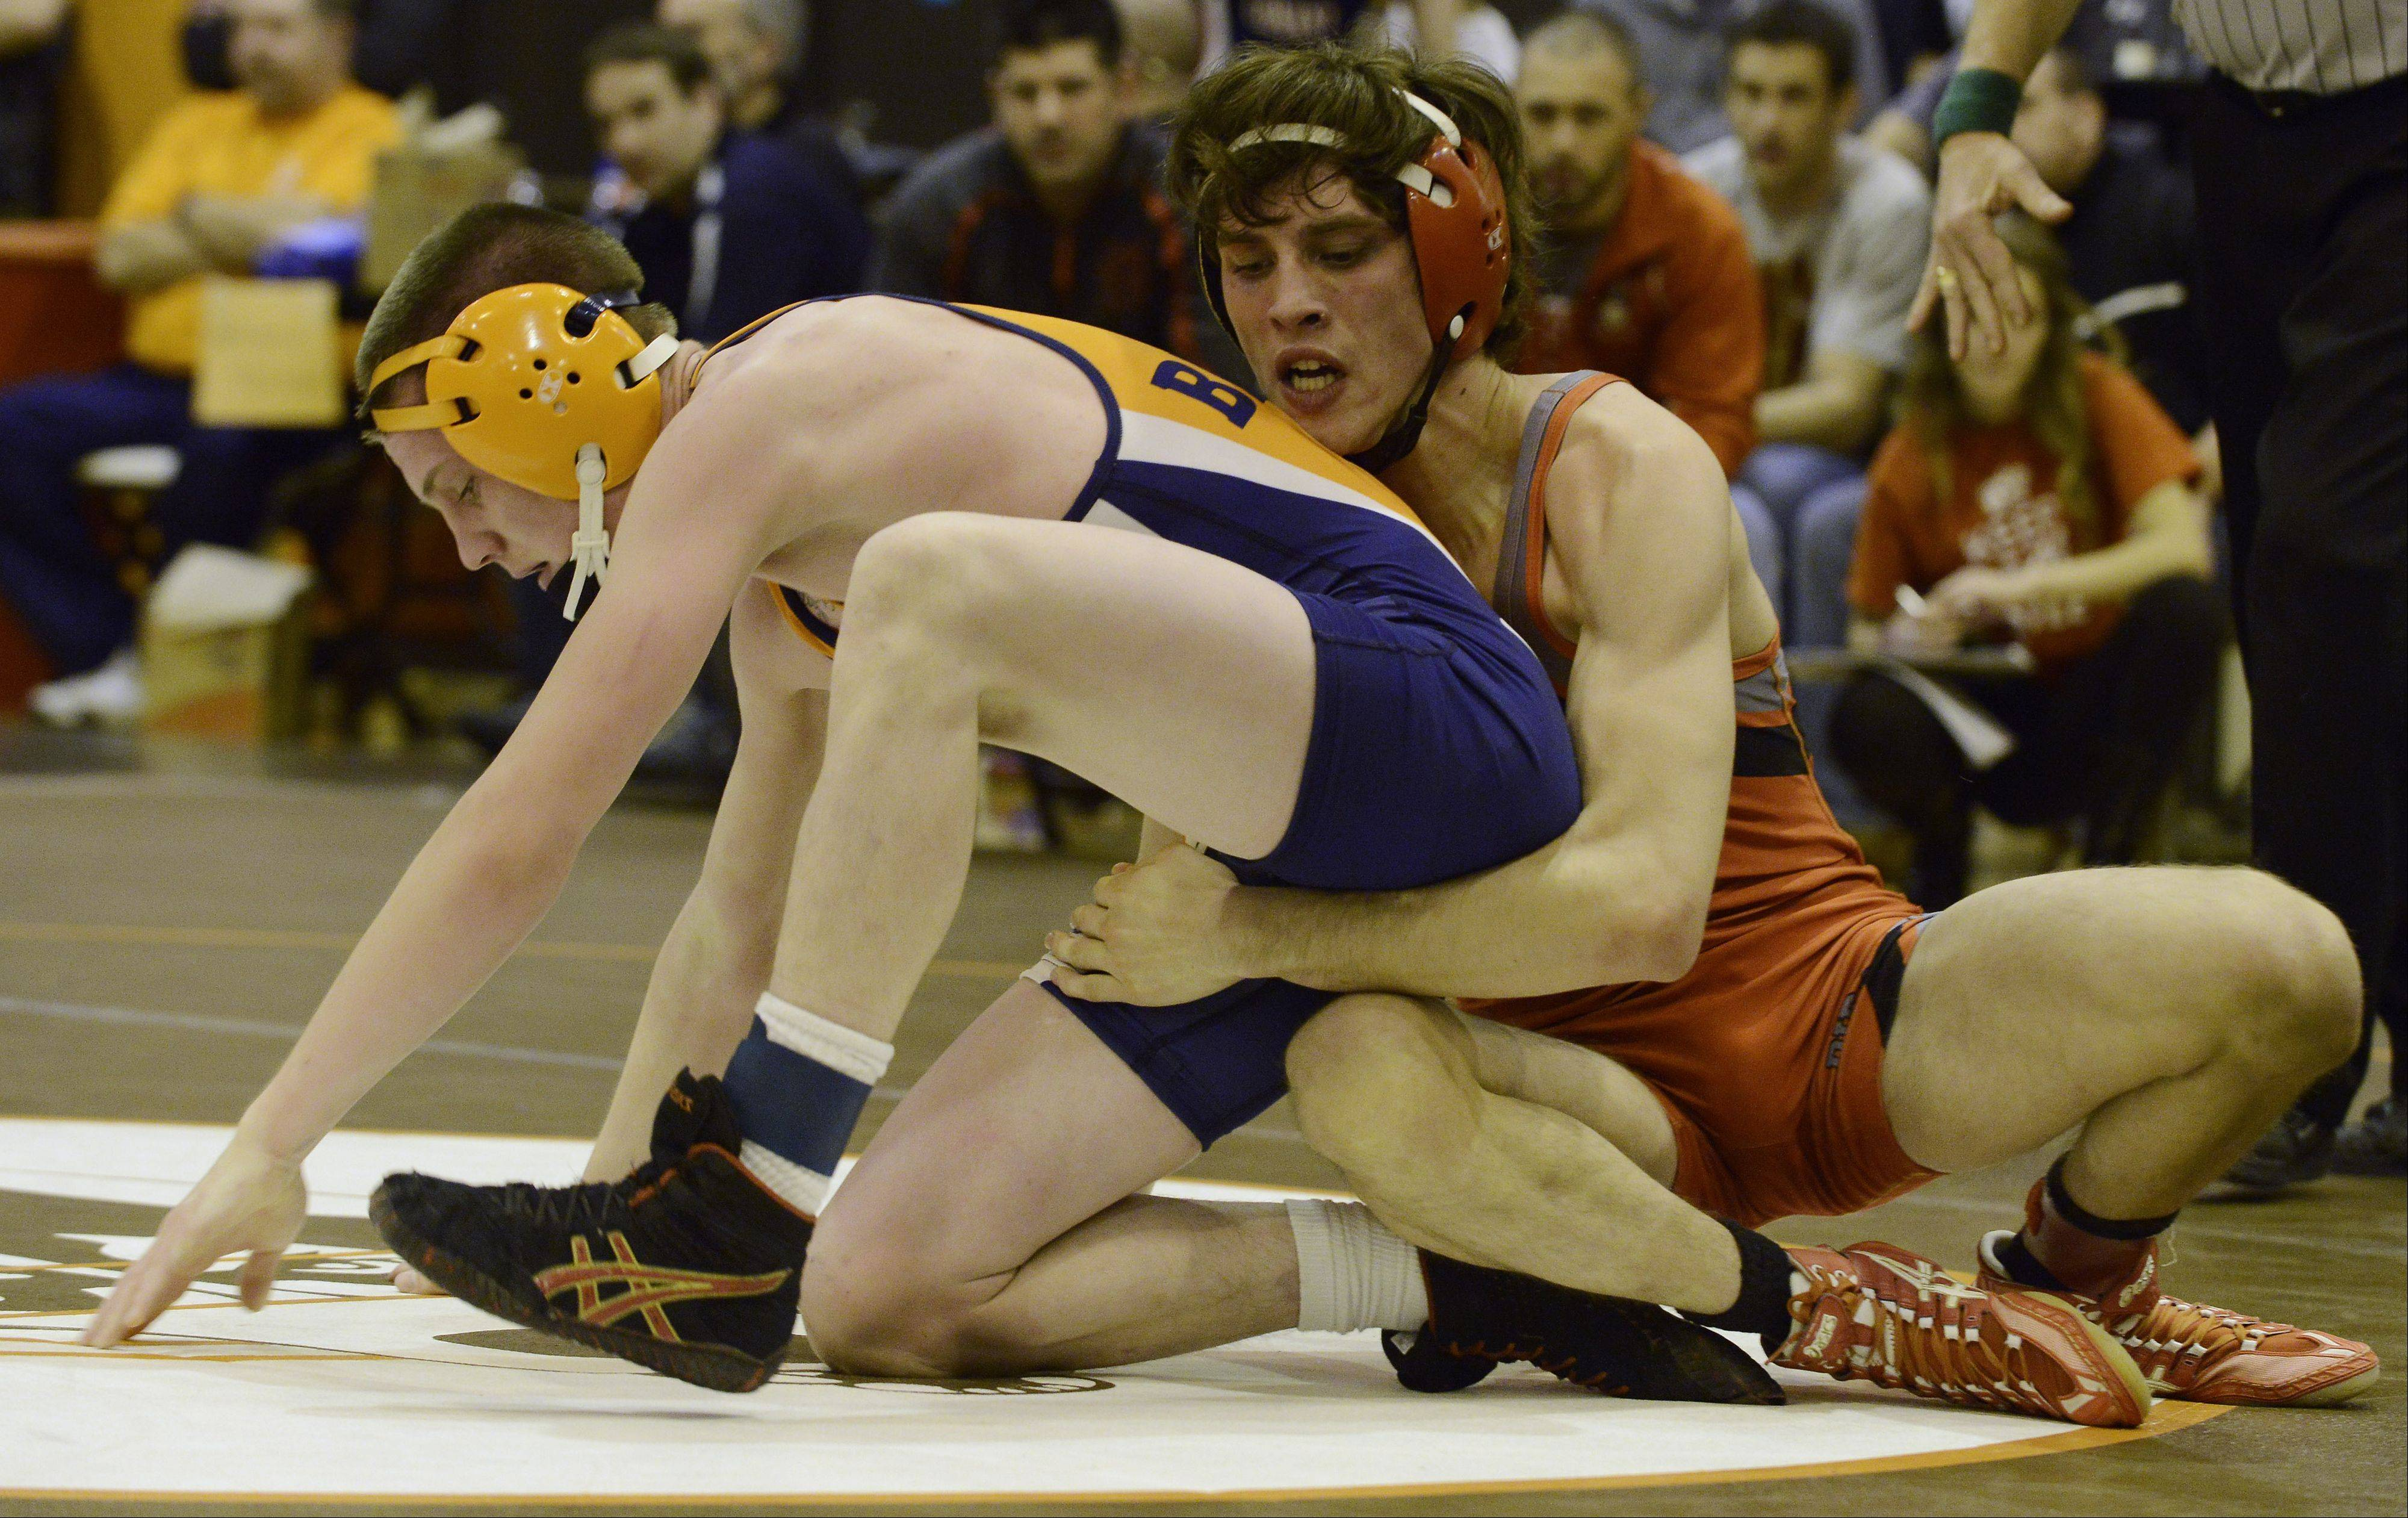 Buffalo Grove's Chase Ori, left, and Palatine's Juan Guajardo wrestle in the 126-pound finals during the Mid-Suburban League meet at Hersey on Saturday.